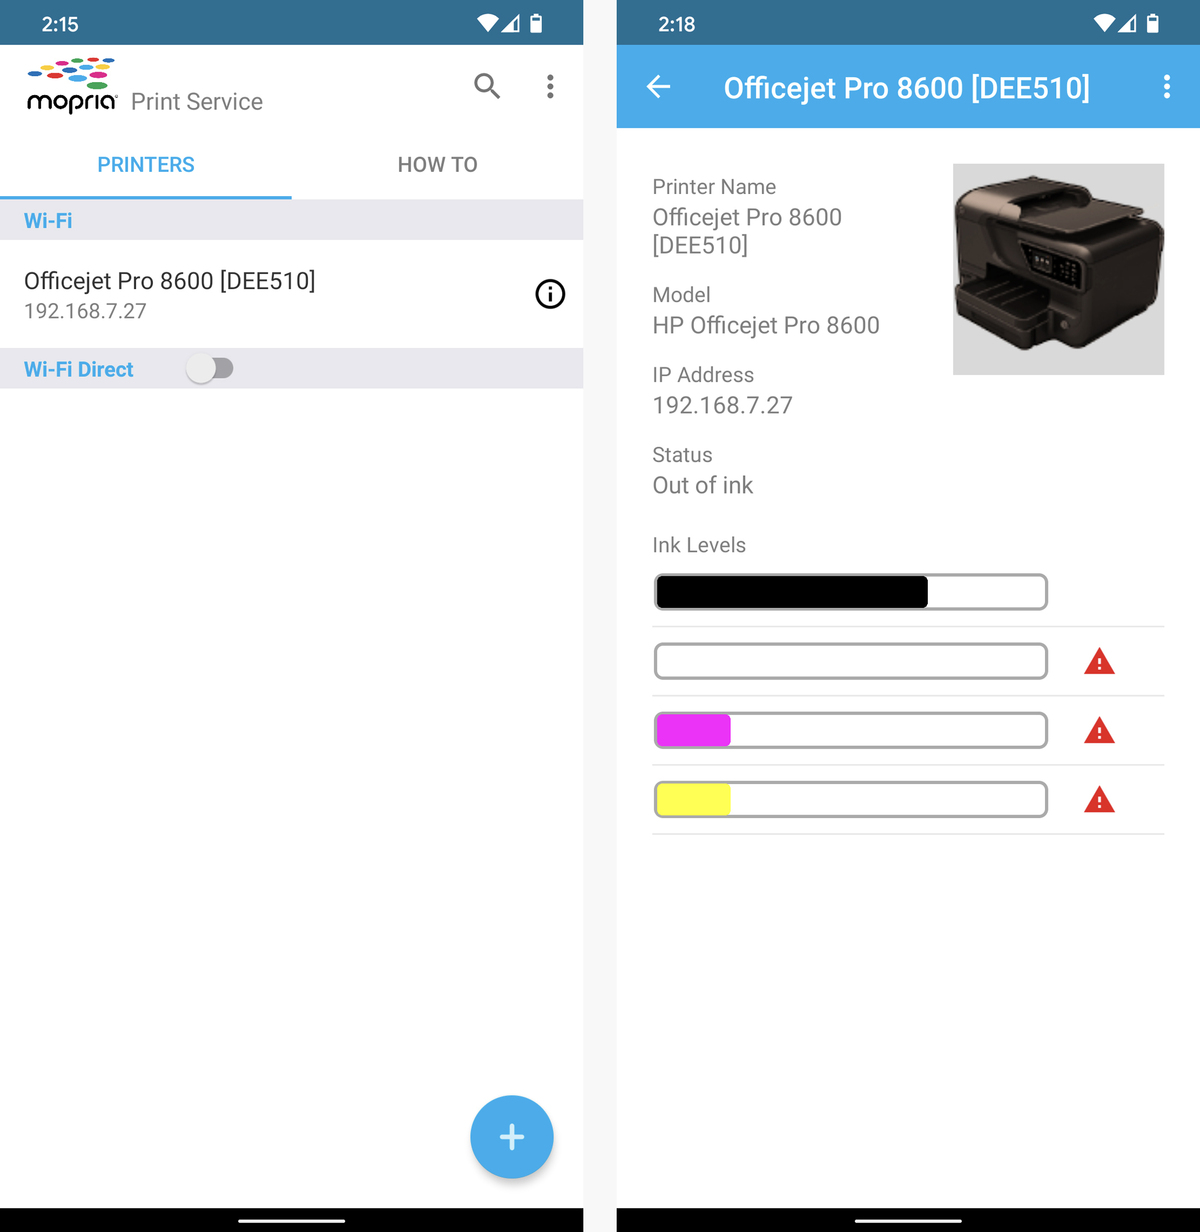 android printing scanning mopria print service